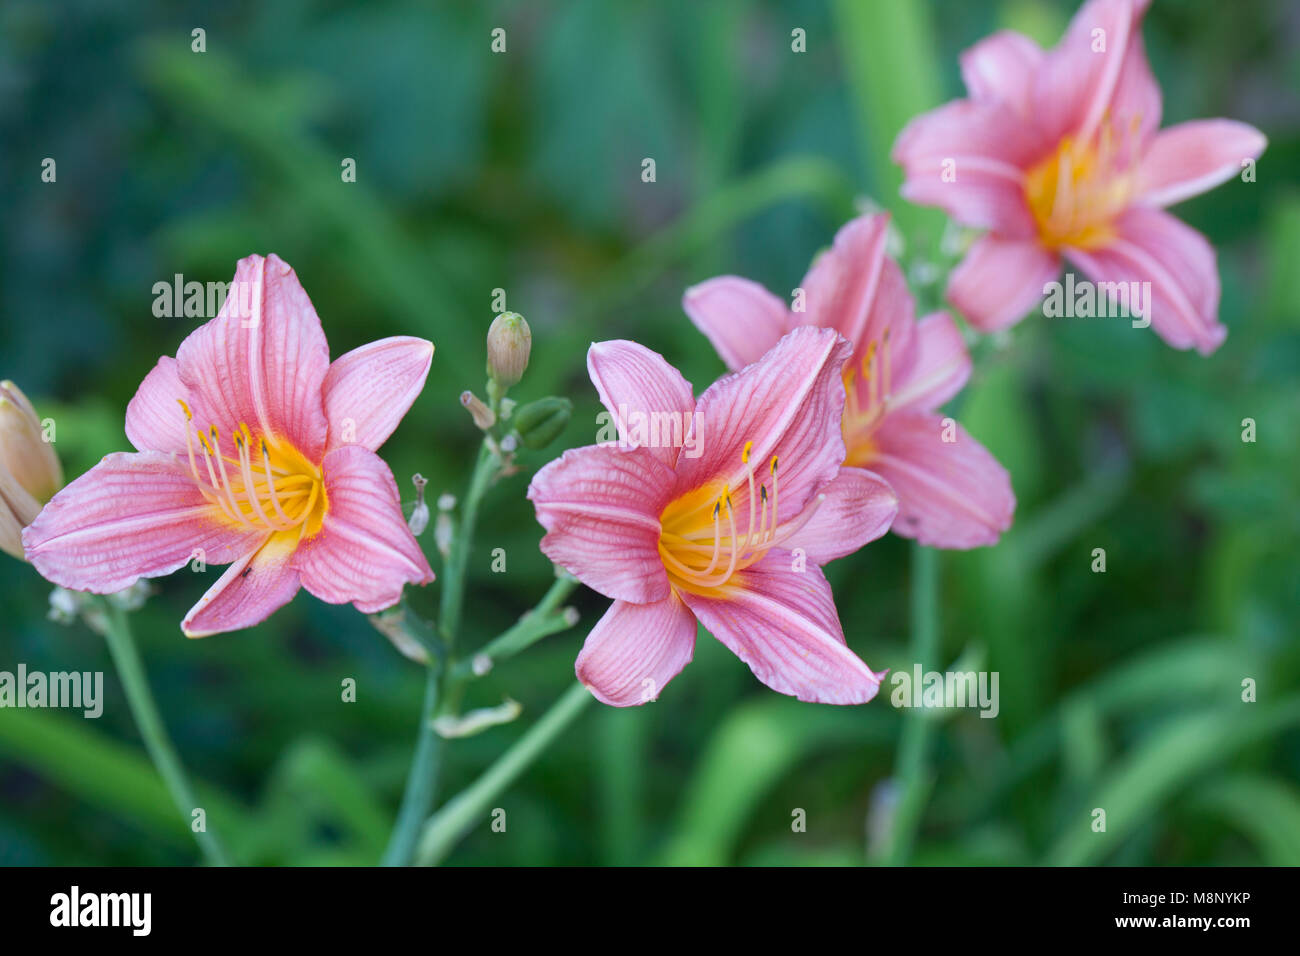 """Taglilie  /""""Bed of Roses/"""" Daylily  Hemerocallis"""